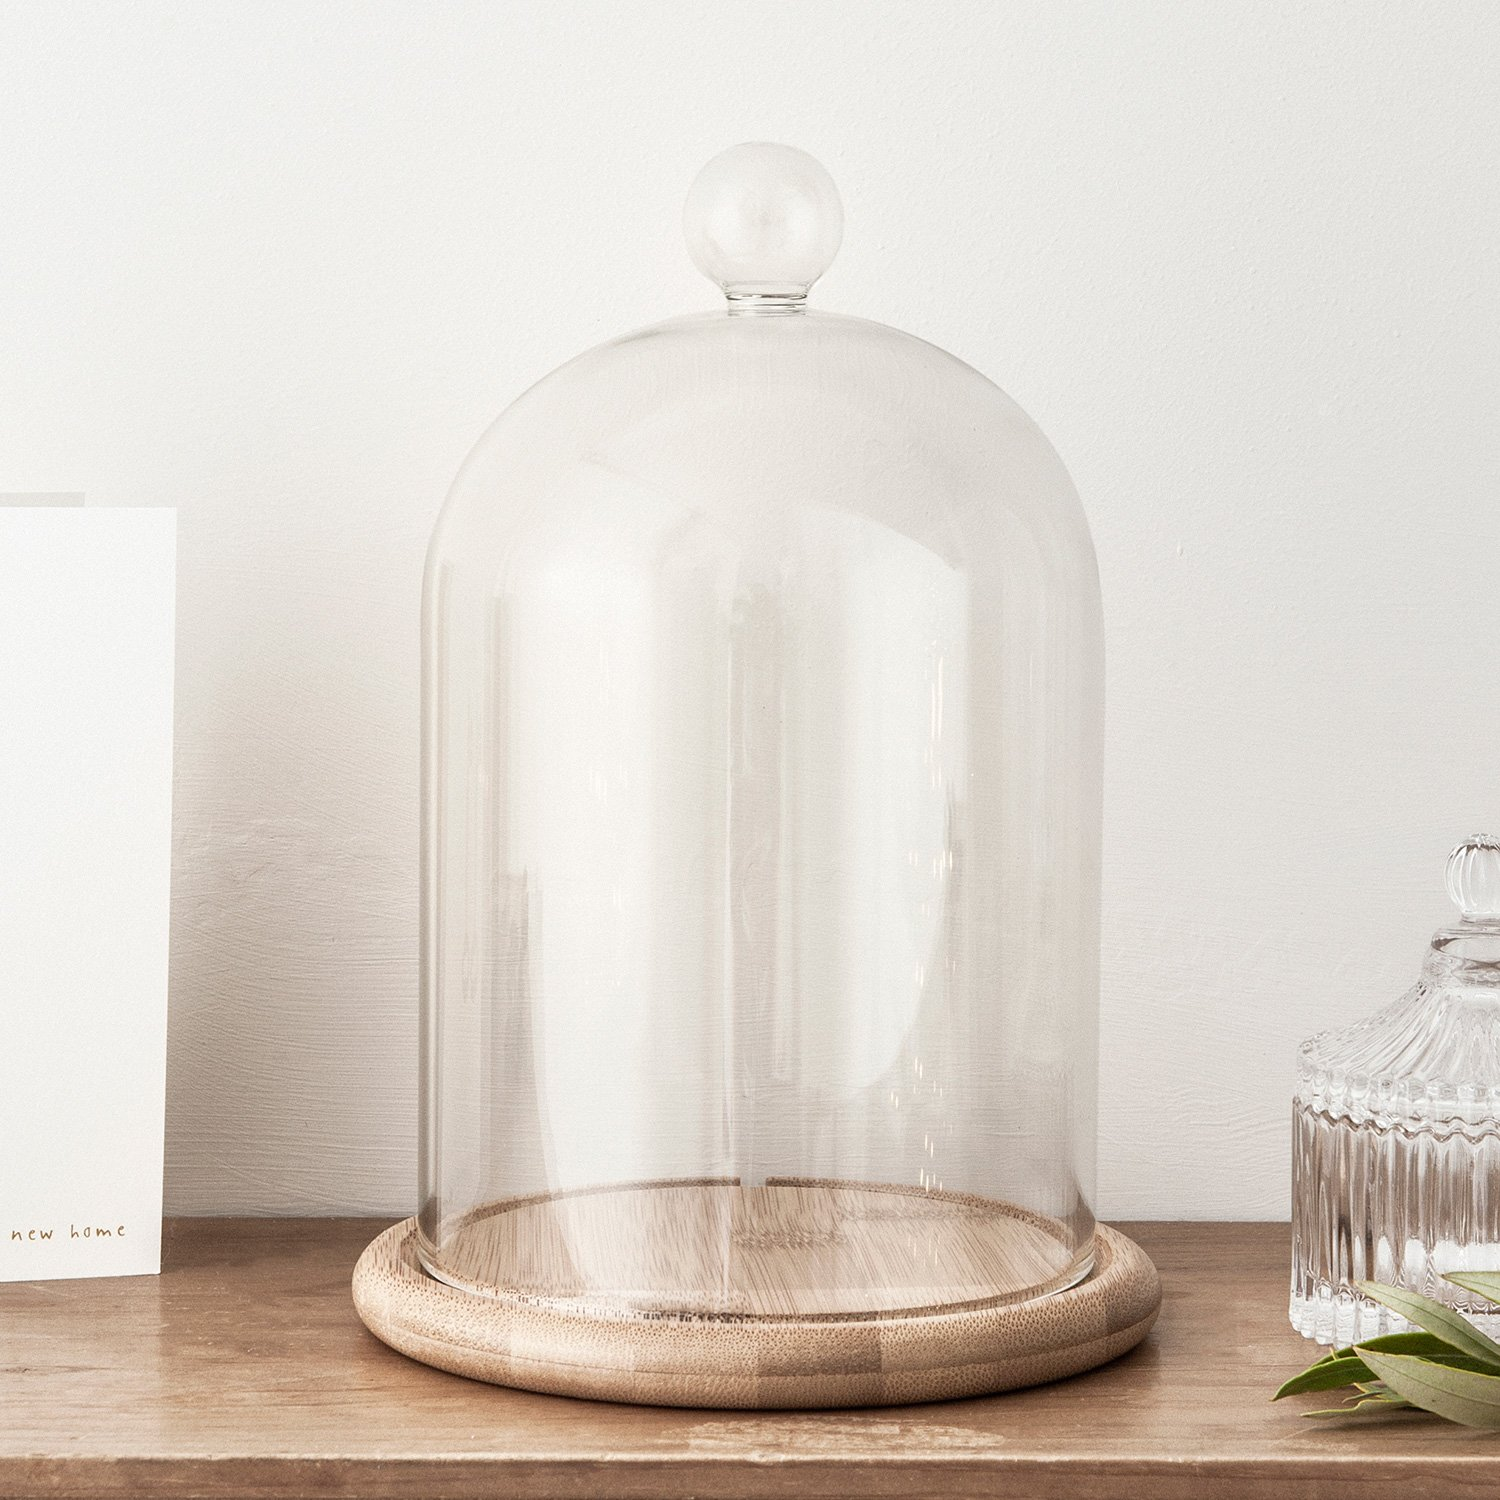 Glass Cloche Bell Jar Display Dome with Bamboo Base - 9'' x 6''